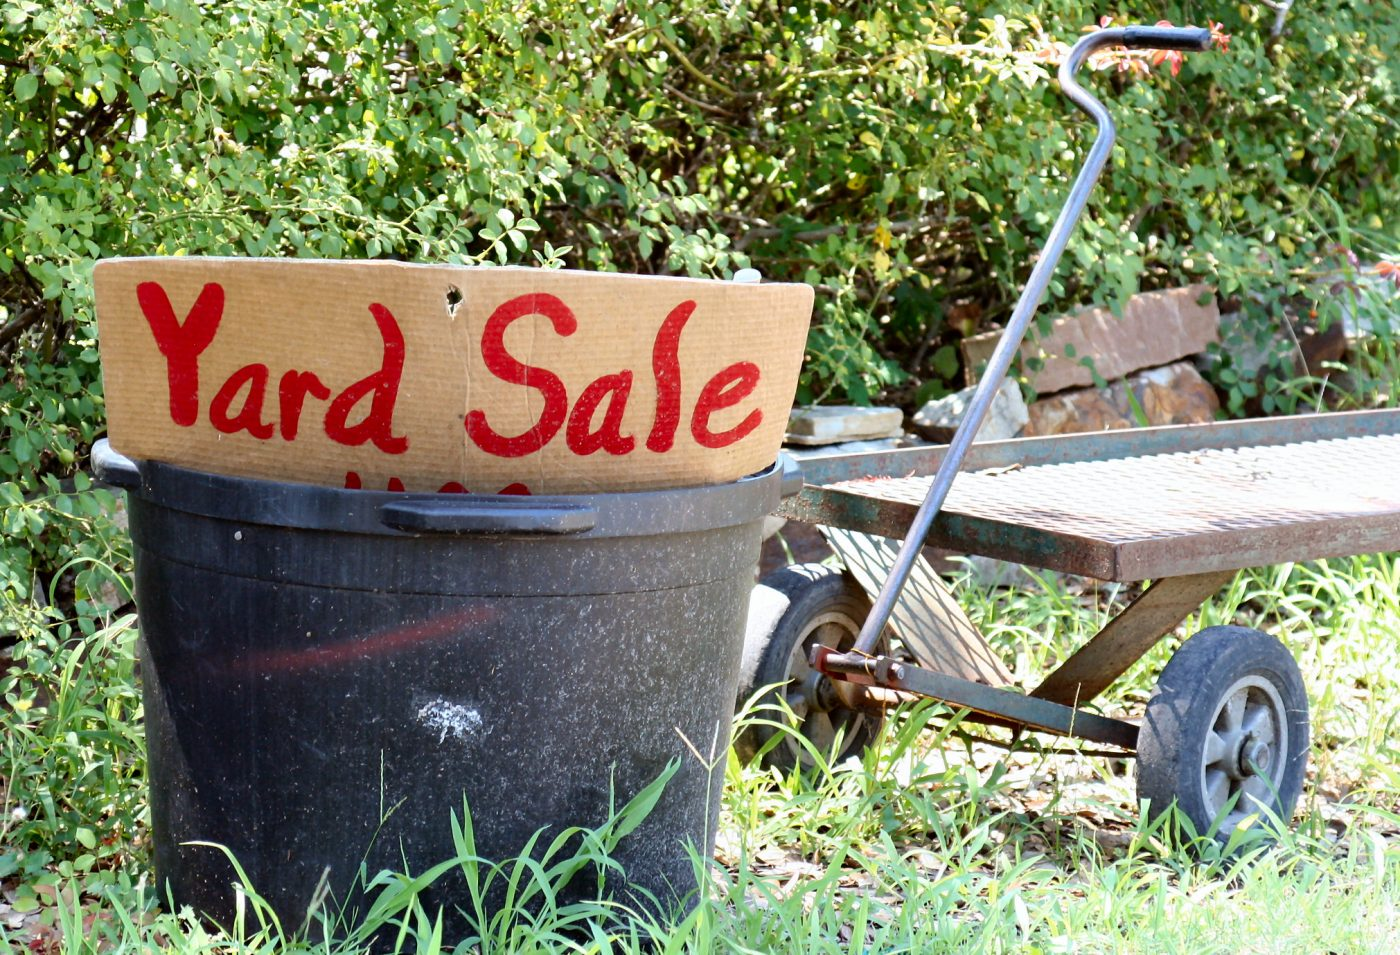 Yard Sale (by Cheryl Empey)